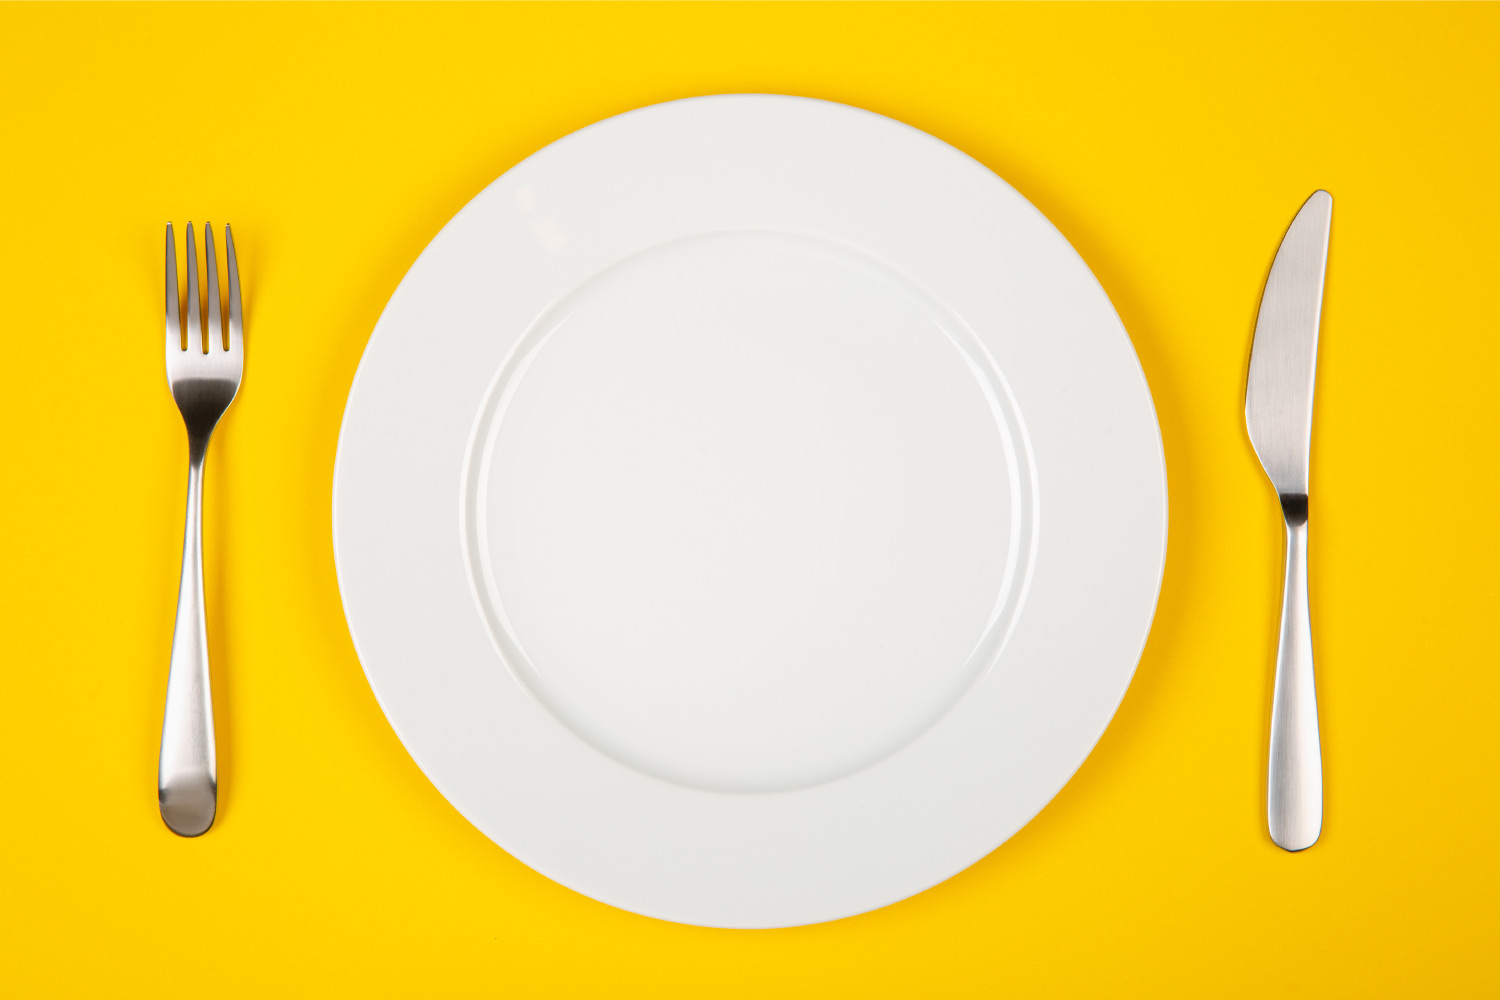 Aerial view of a white plate, fork, and knife on a yellow table for food